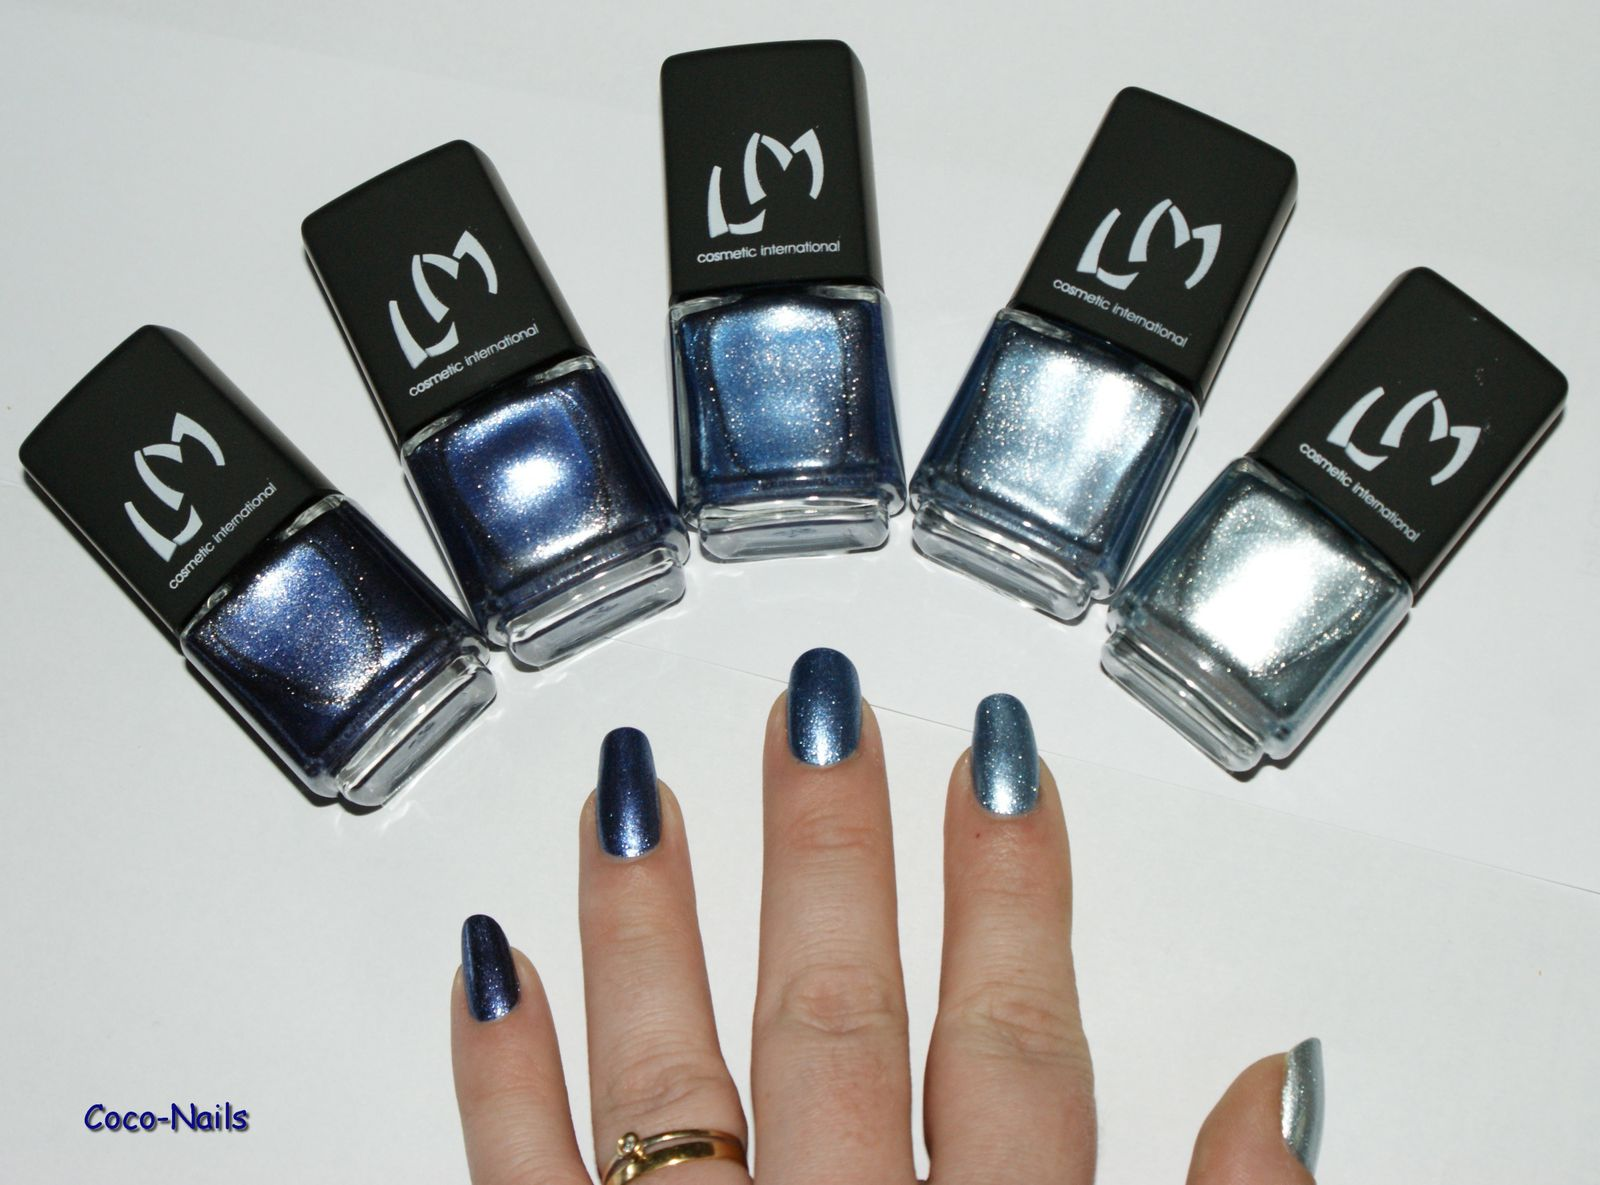 LM Cosmetic: Blue jeans